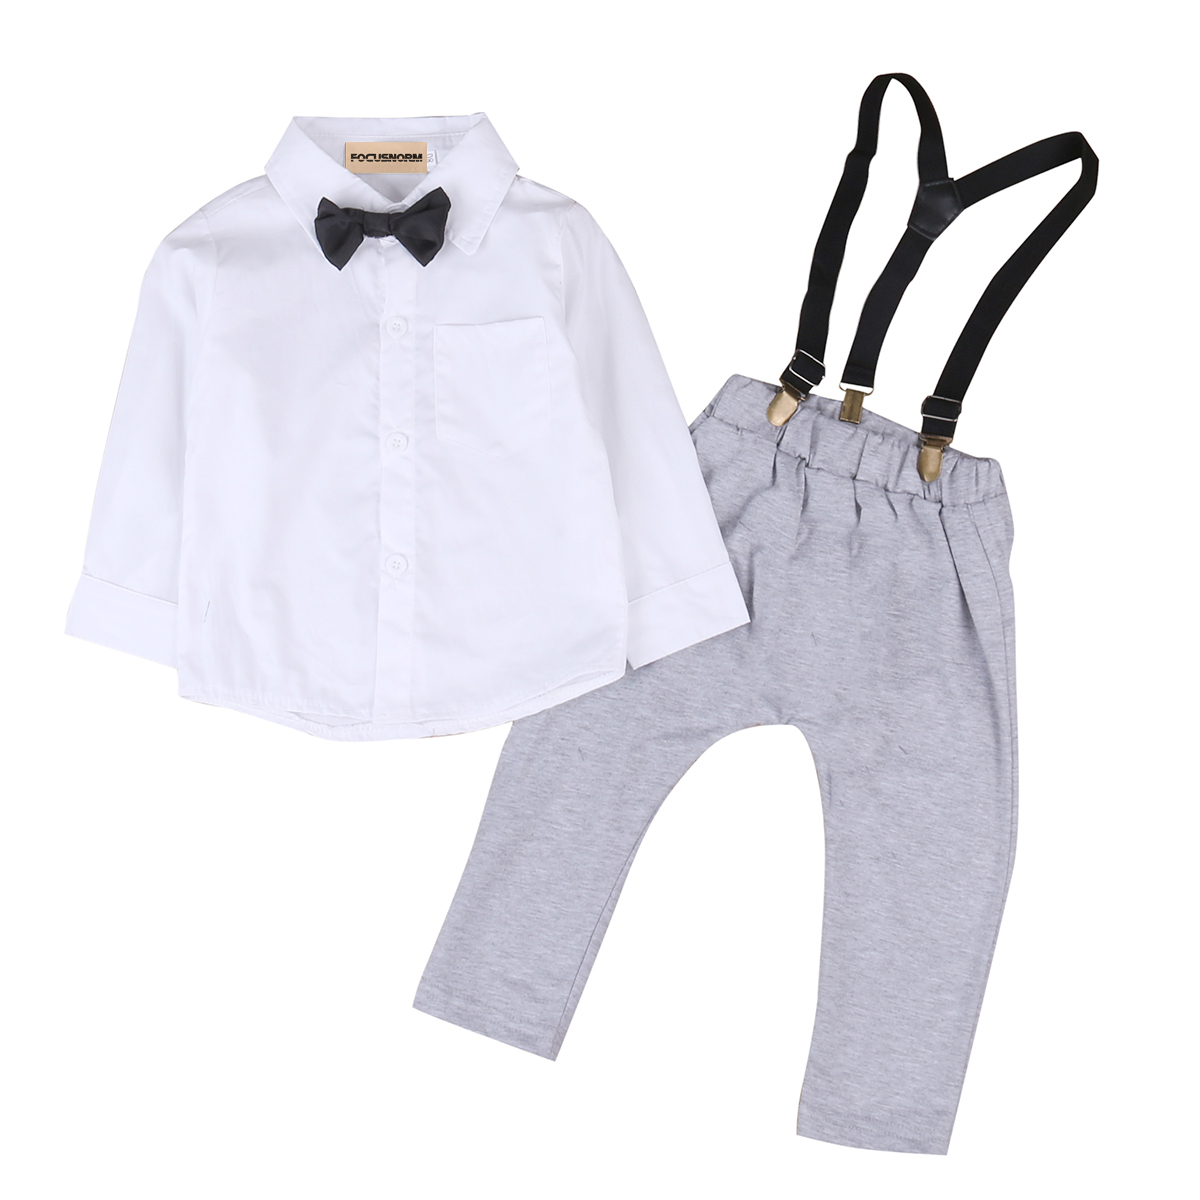 Toddler Kids Baby Boys Outfits Bow Tie Long Sleeves Solid Shirt Tops+Suspenders Long Pants Overalls Clothes Set 0-24M